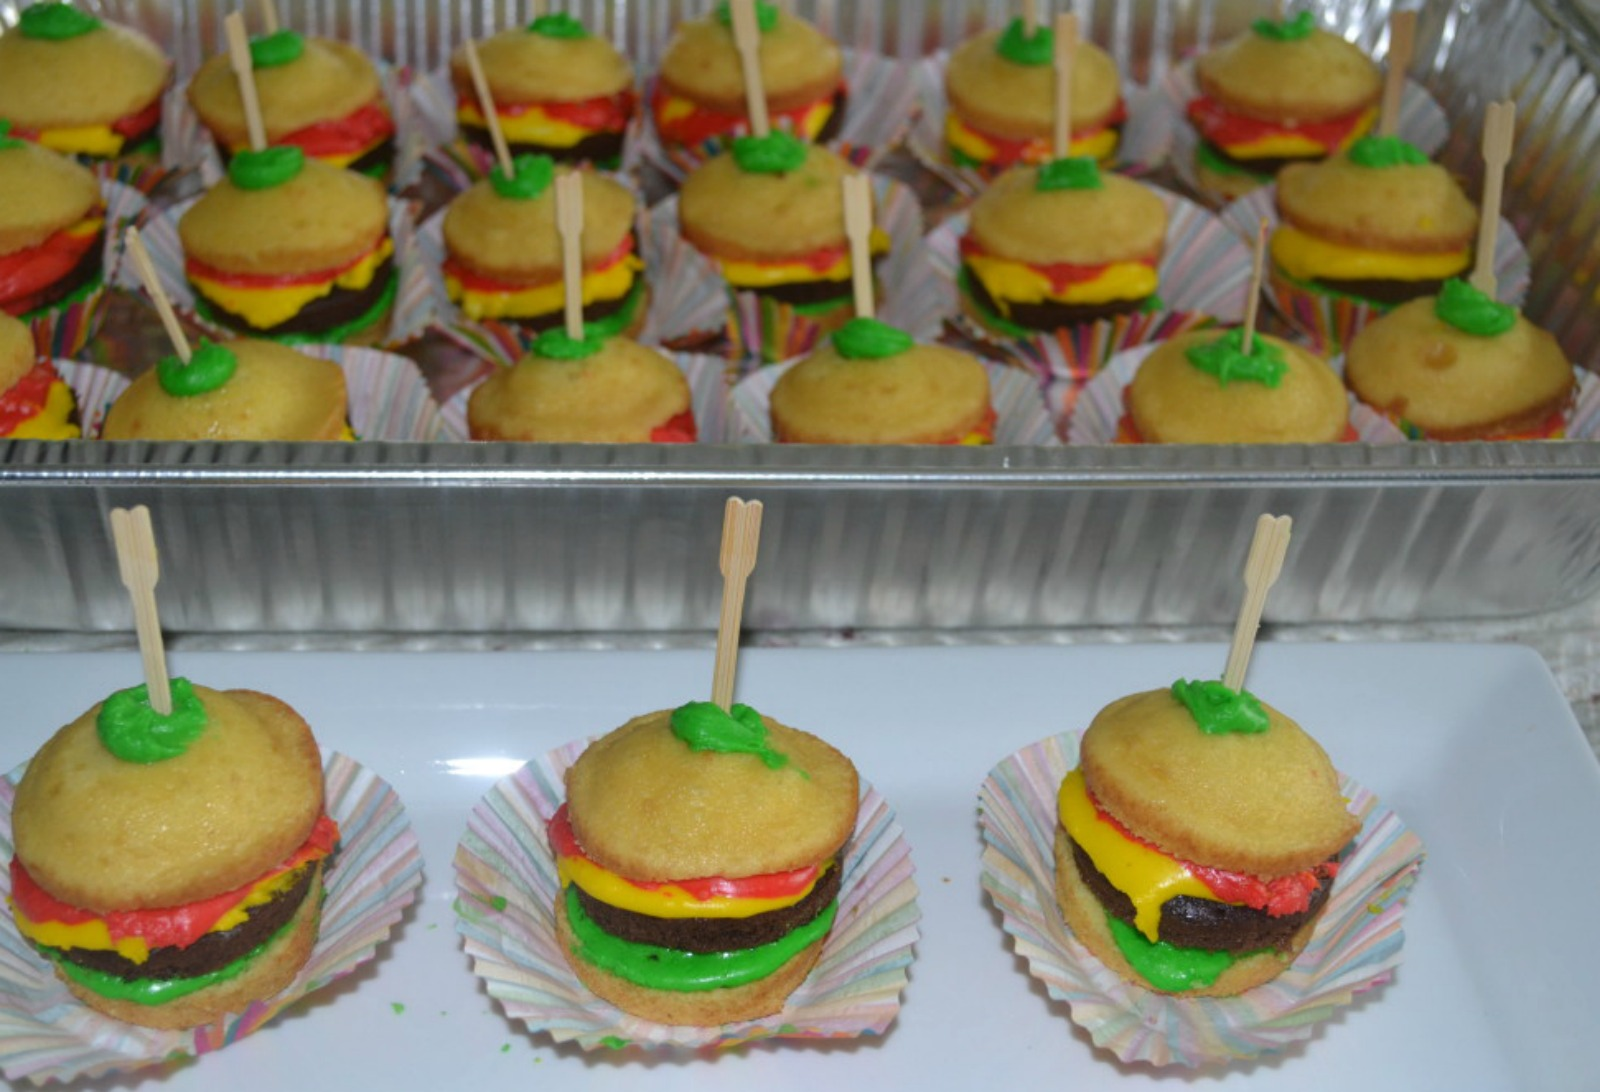 Cook-out Cupcakes are a fun and tasty summertime dessert. Cupcakes are decorated to look like a cheeseburger. Loved by adults as well as children